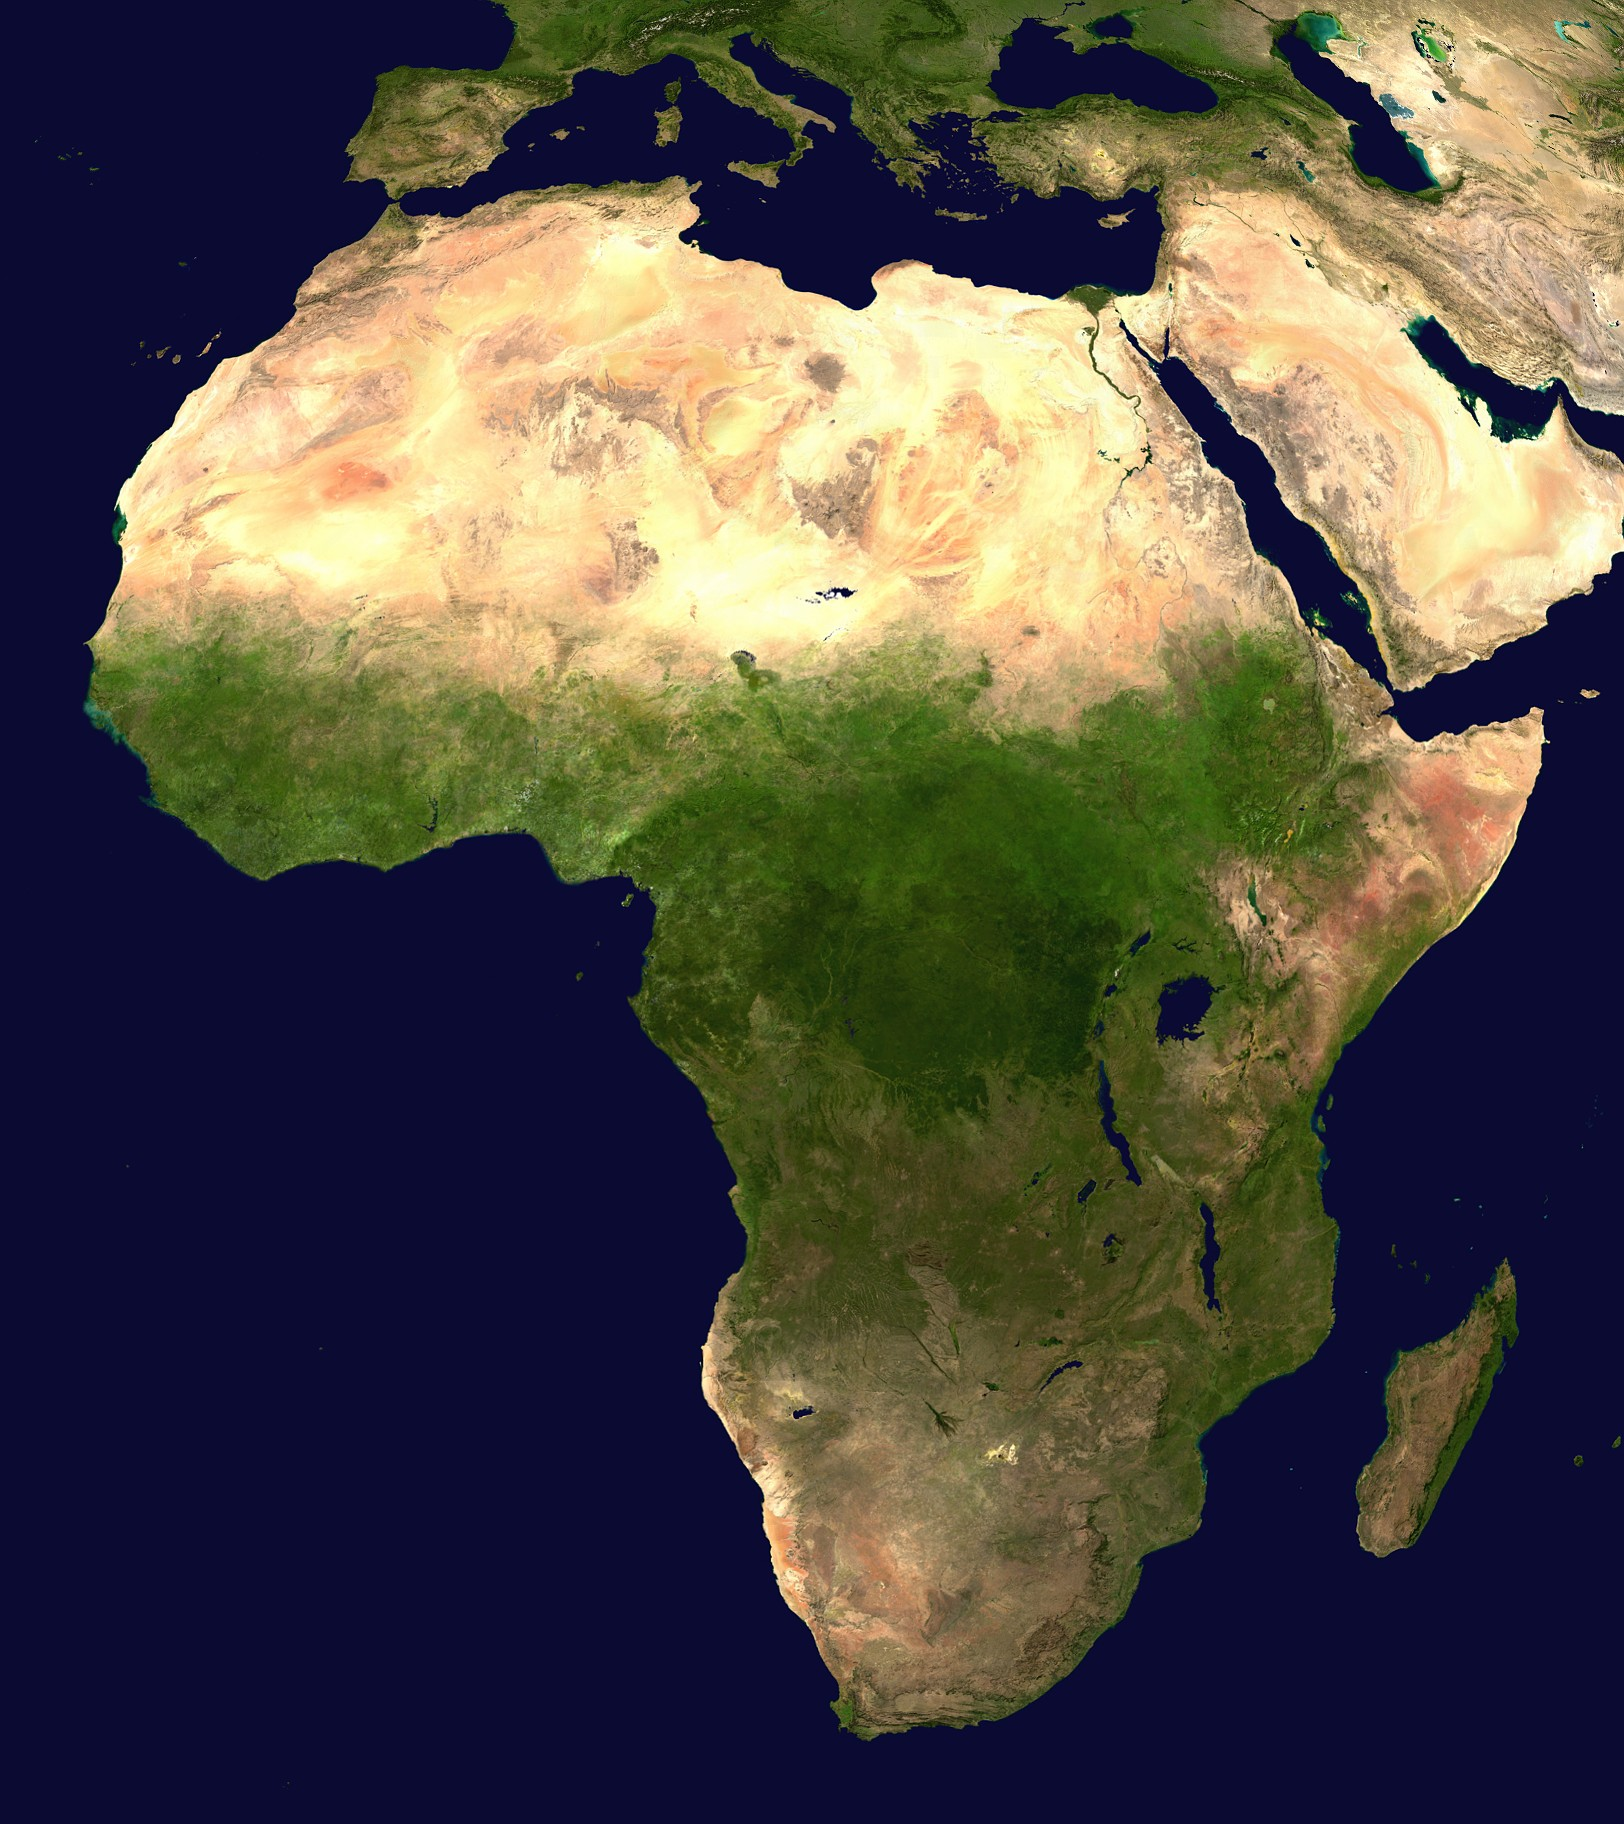 A map of Africa showing the ecological break around the Sahara desert